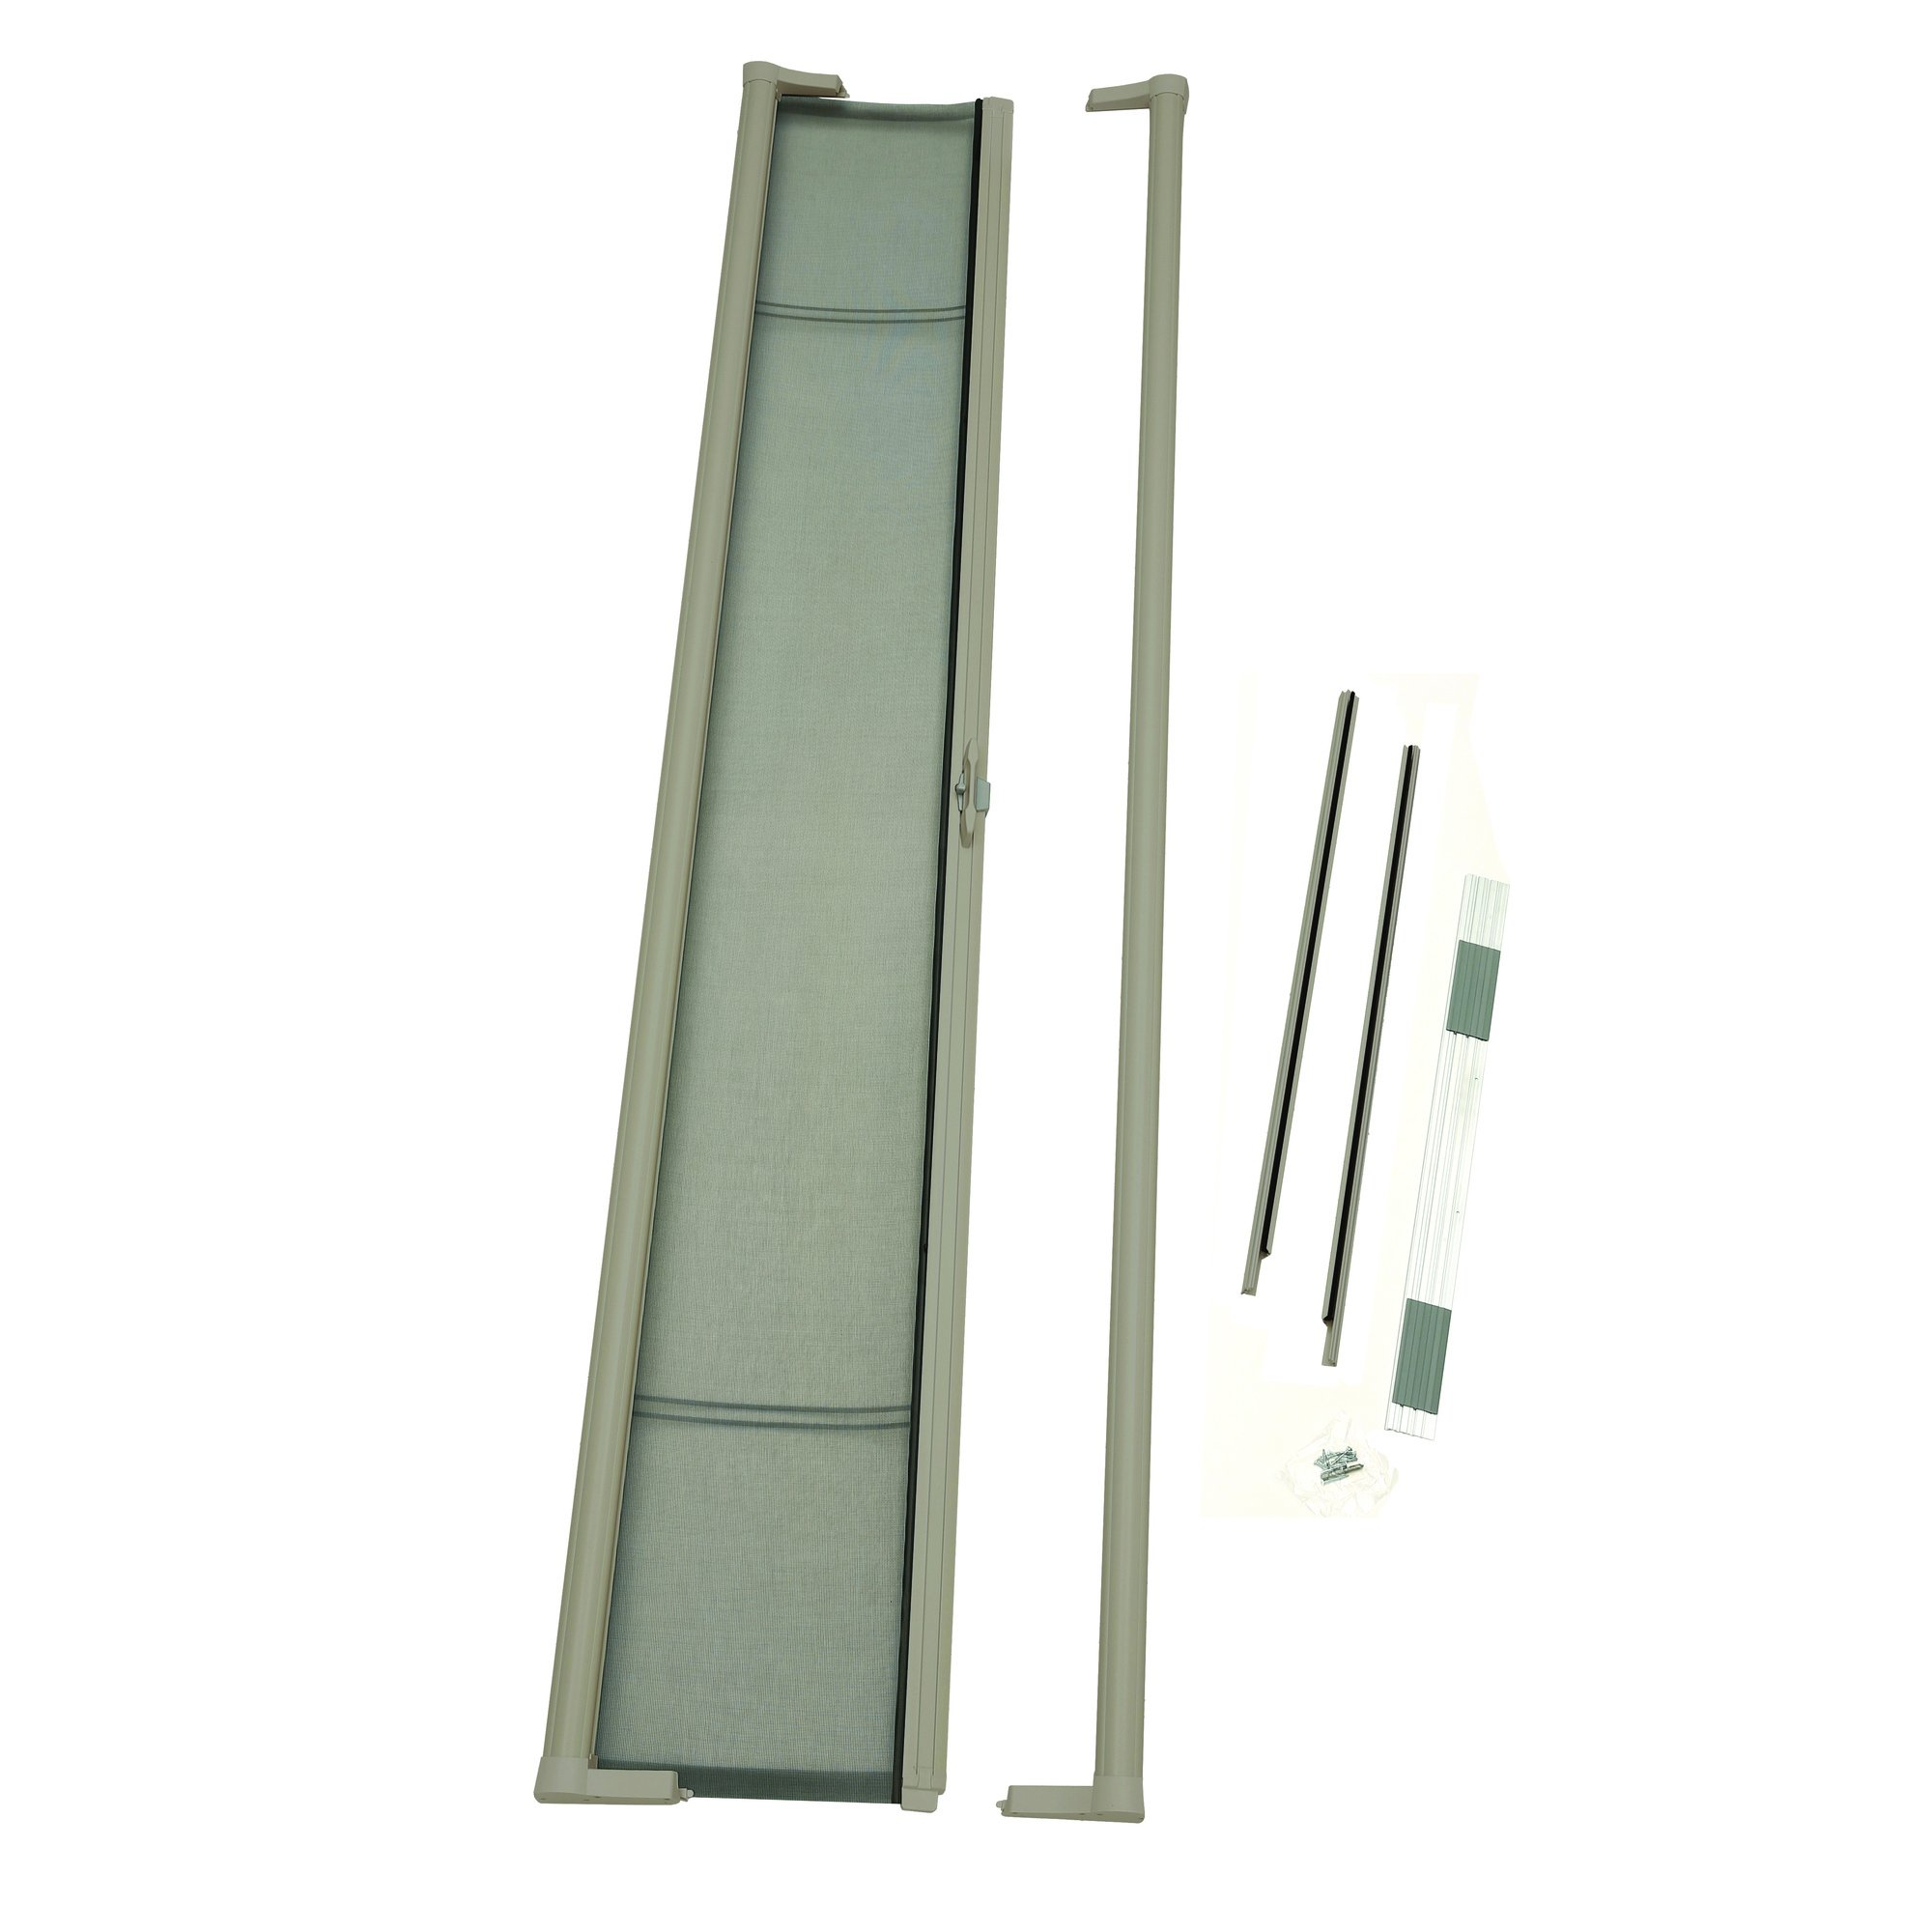 ODL Brisa Premium Retractable Screen for 96 in. Inswing/Outswing Hinged Doors - Sandstone